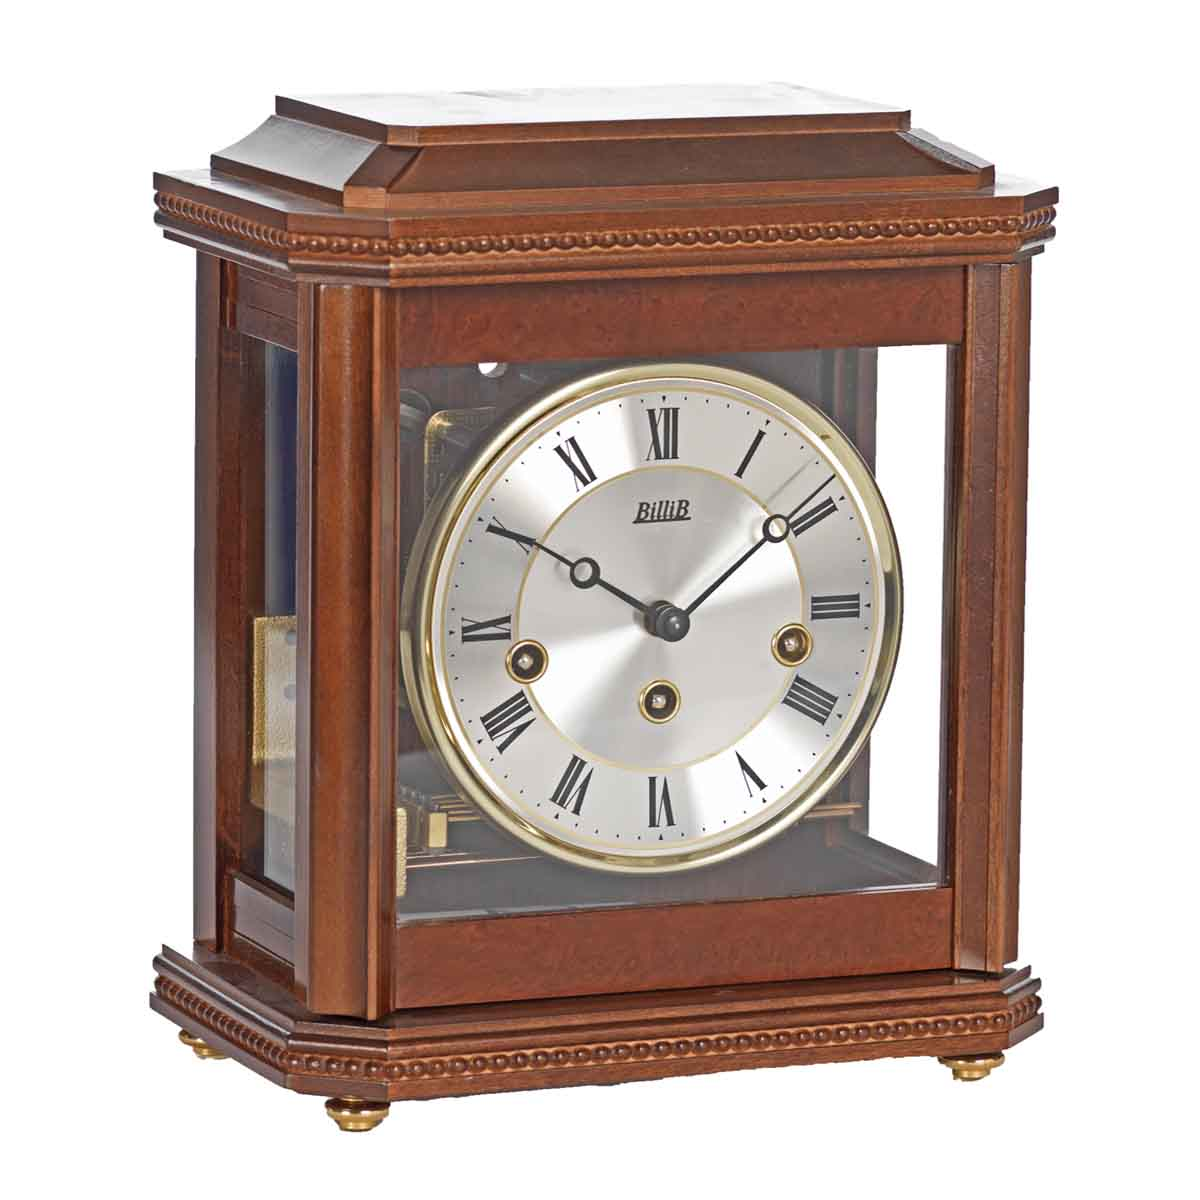 BIRCHGROVE Walnut Finish. Mantel Table Clock